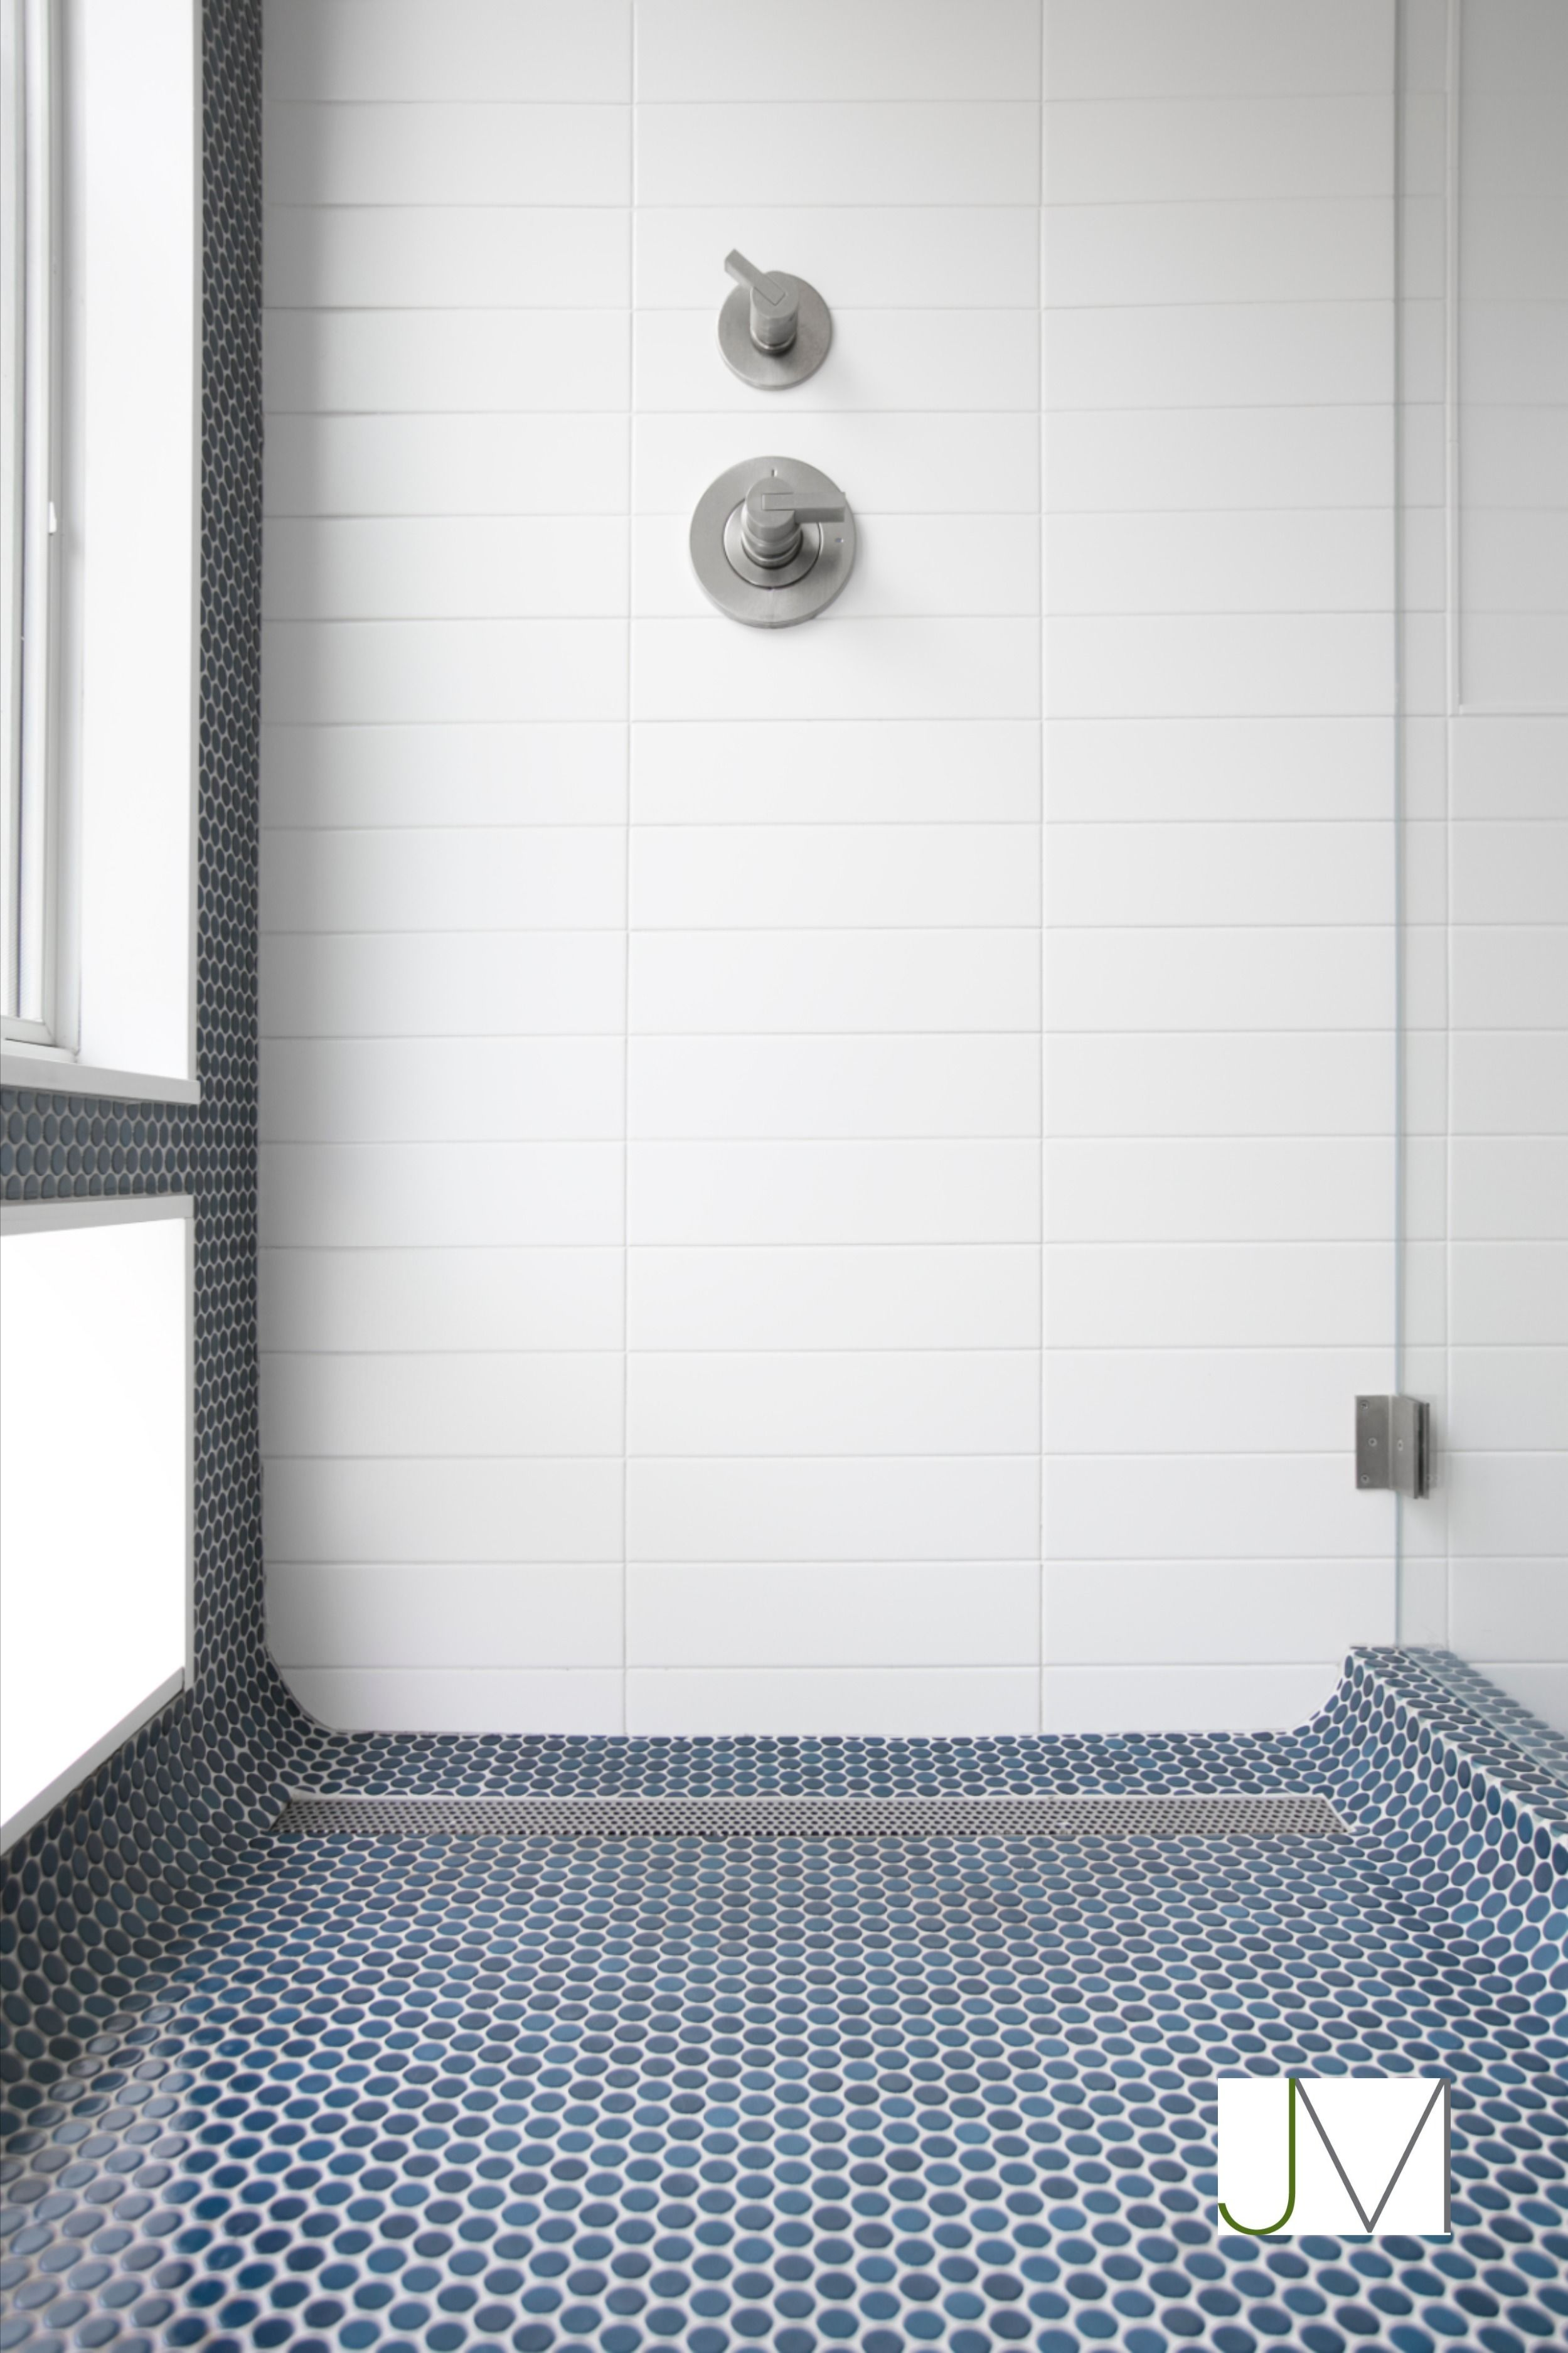 White Shower Wall With Navy Pennytile Accent And Floor Tile In 2020 Small Bathroom Tiles Blue Bathroom Tile Penny Tiles Bathroom